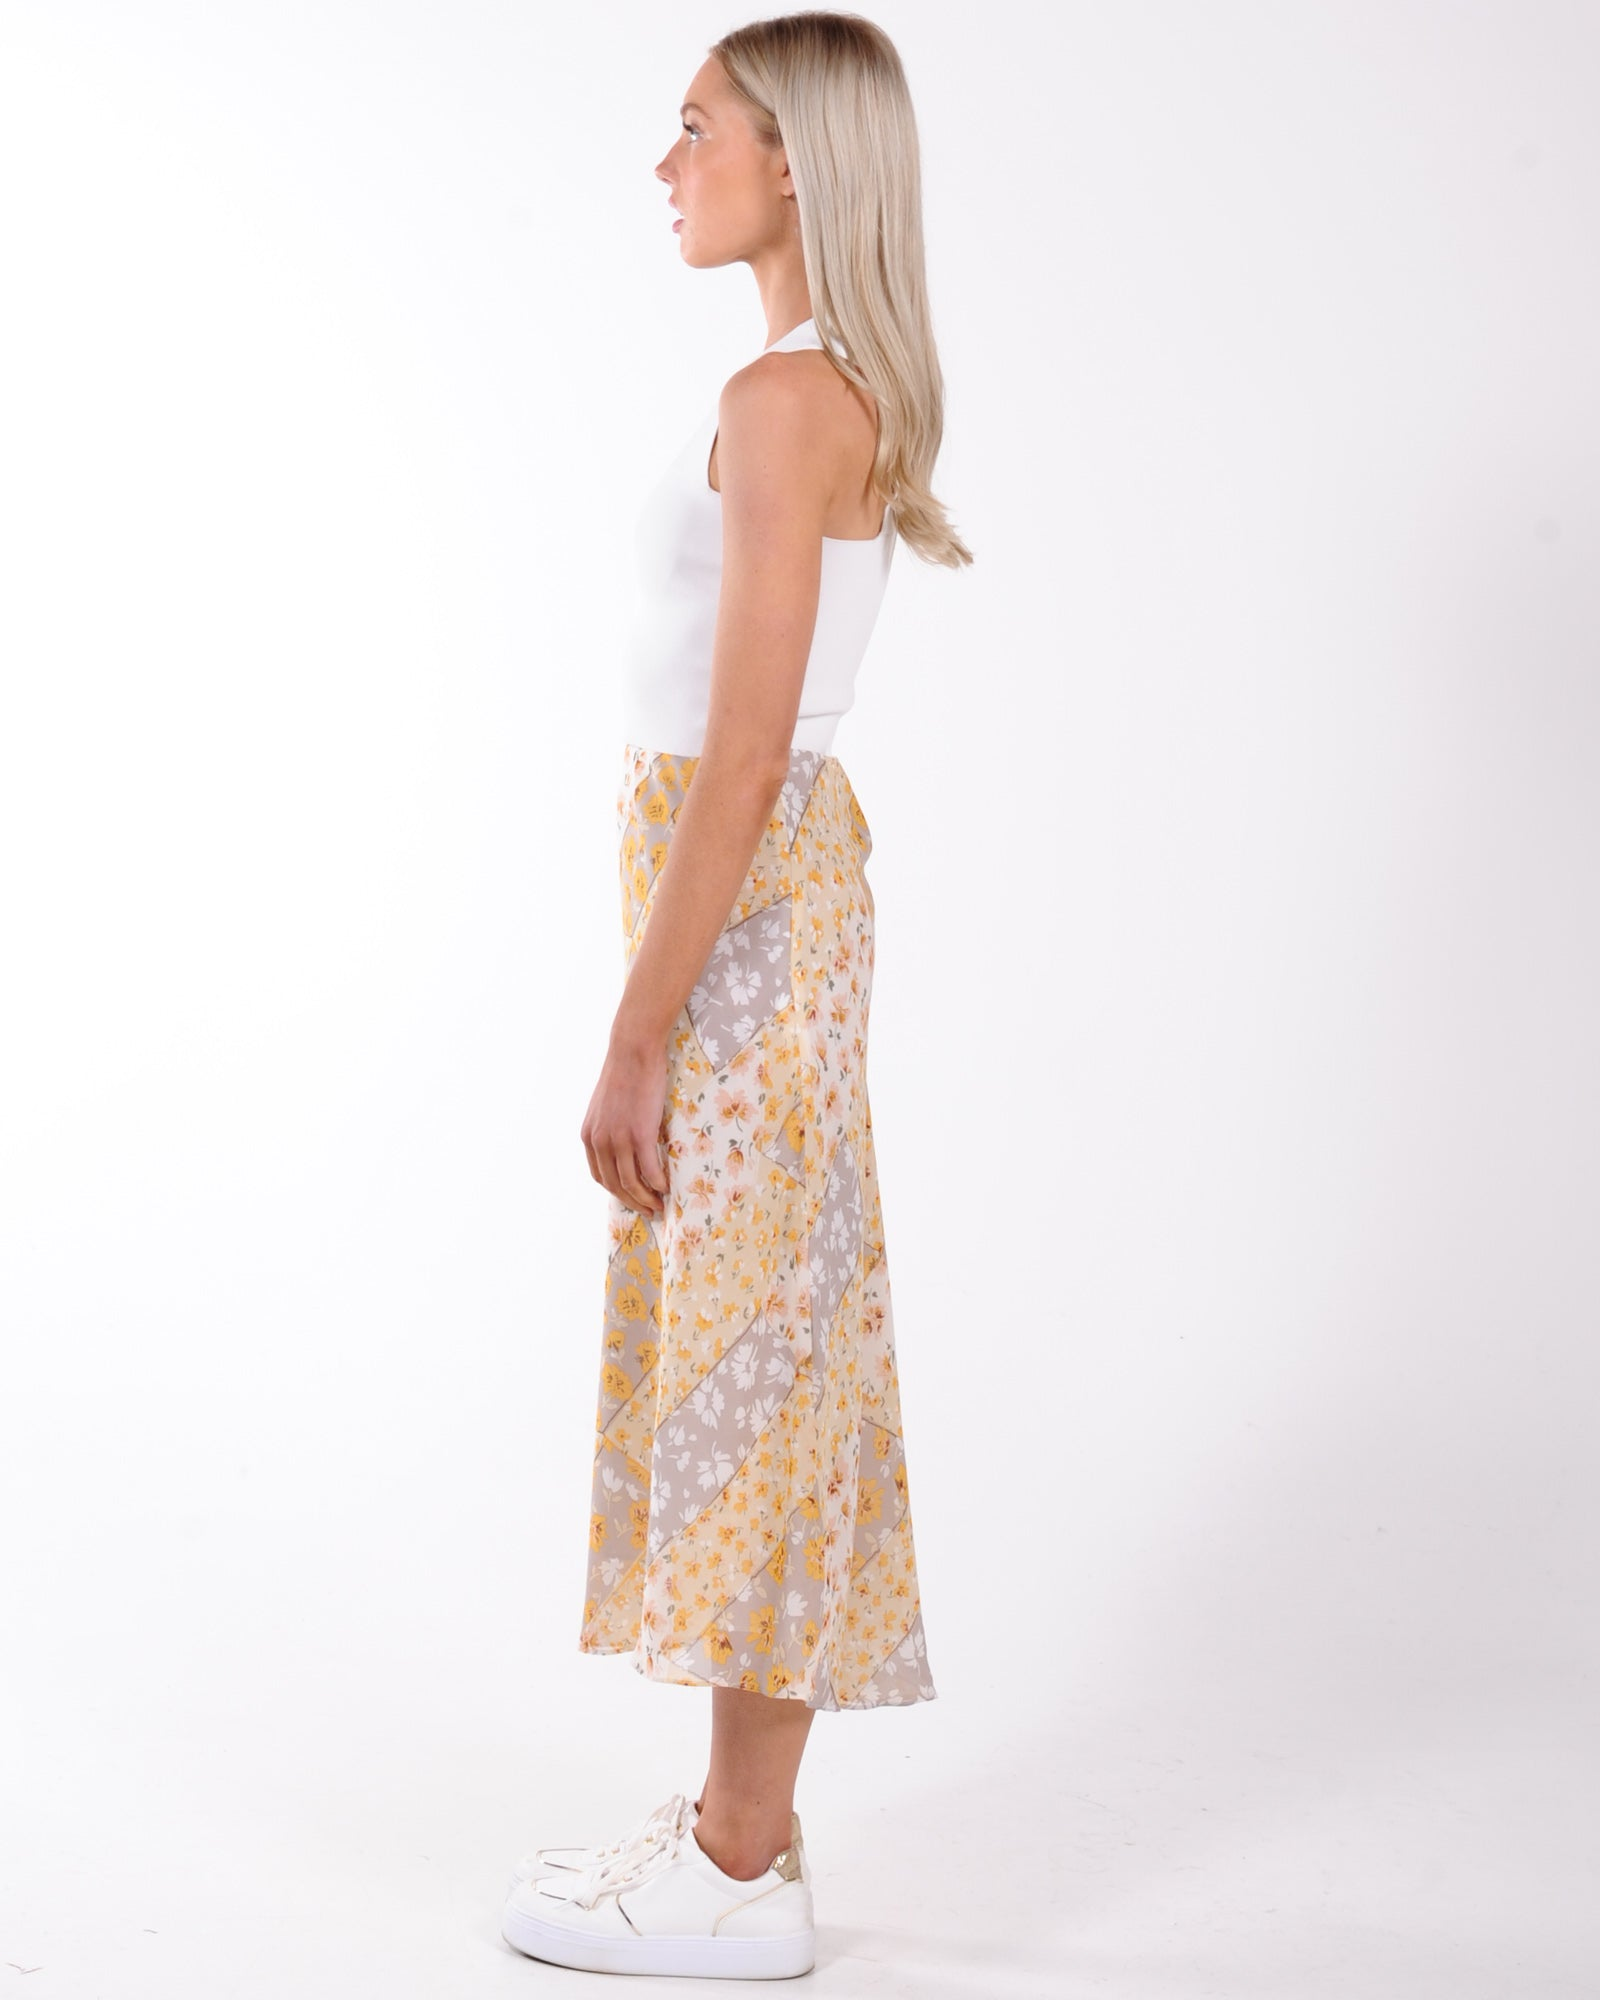 By Your Side Floral Midi Skirt - Yellow